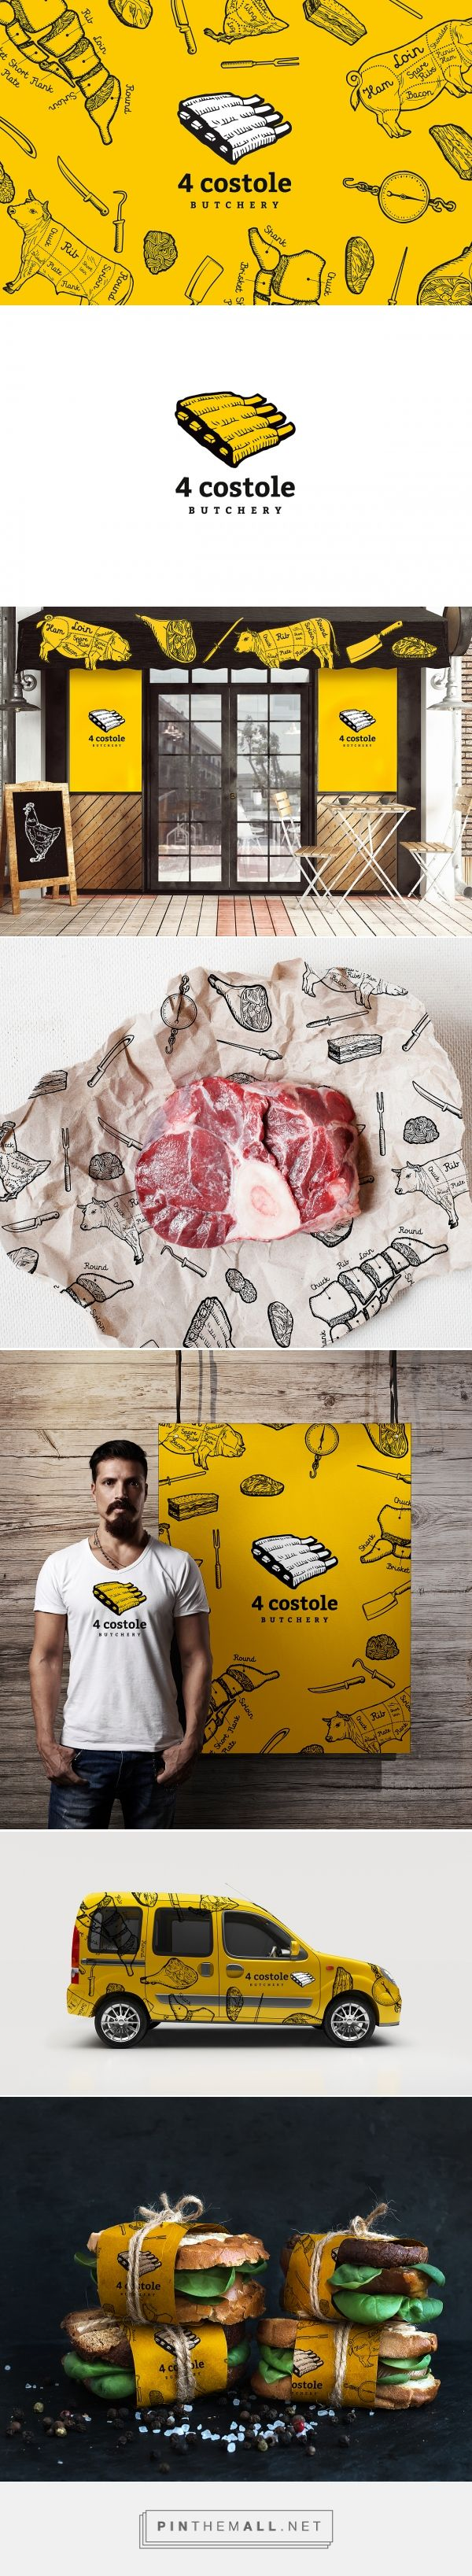 Branding and identity for butcher shop by MAISON D'IDÉE for 4 Costole Butchery curated by Packaging Diva PD. About the best looking sandwiches and packaging I've seen in a while.